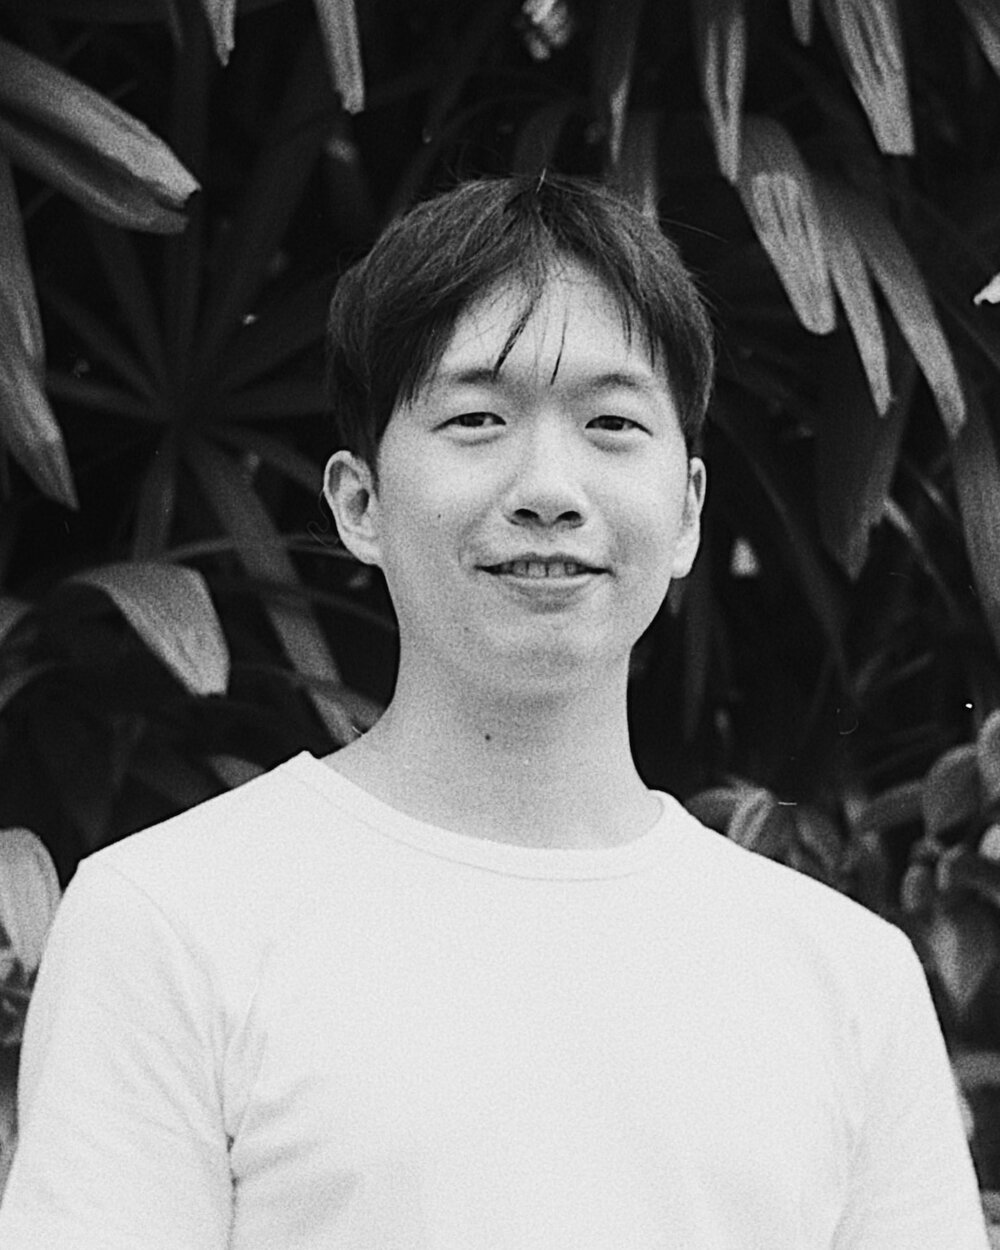 Station Control / Daryl Qilin Yam  is a writer of prose and poetry. He runs and manages Sing Lit Station's programmes, online presence and financial accounts on a full-time basis.